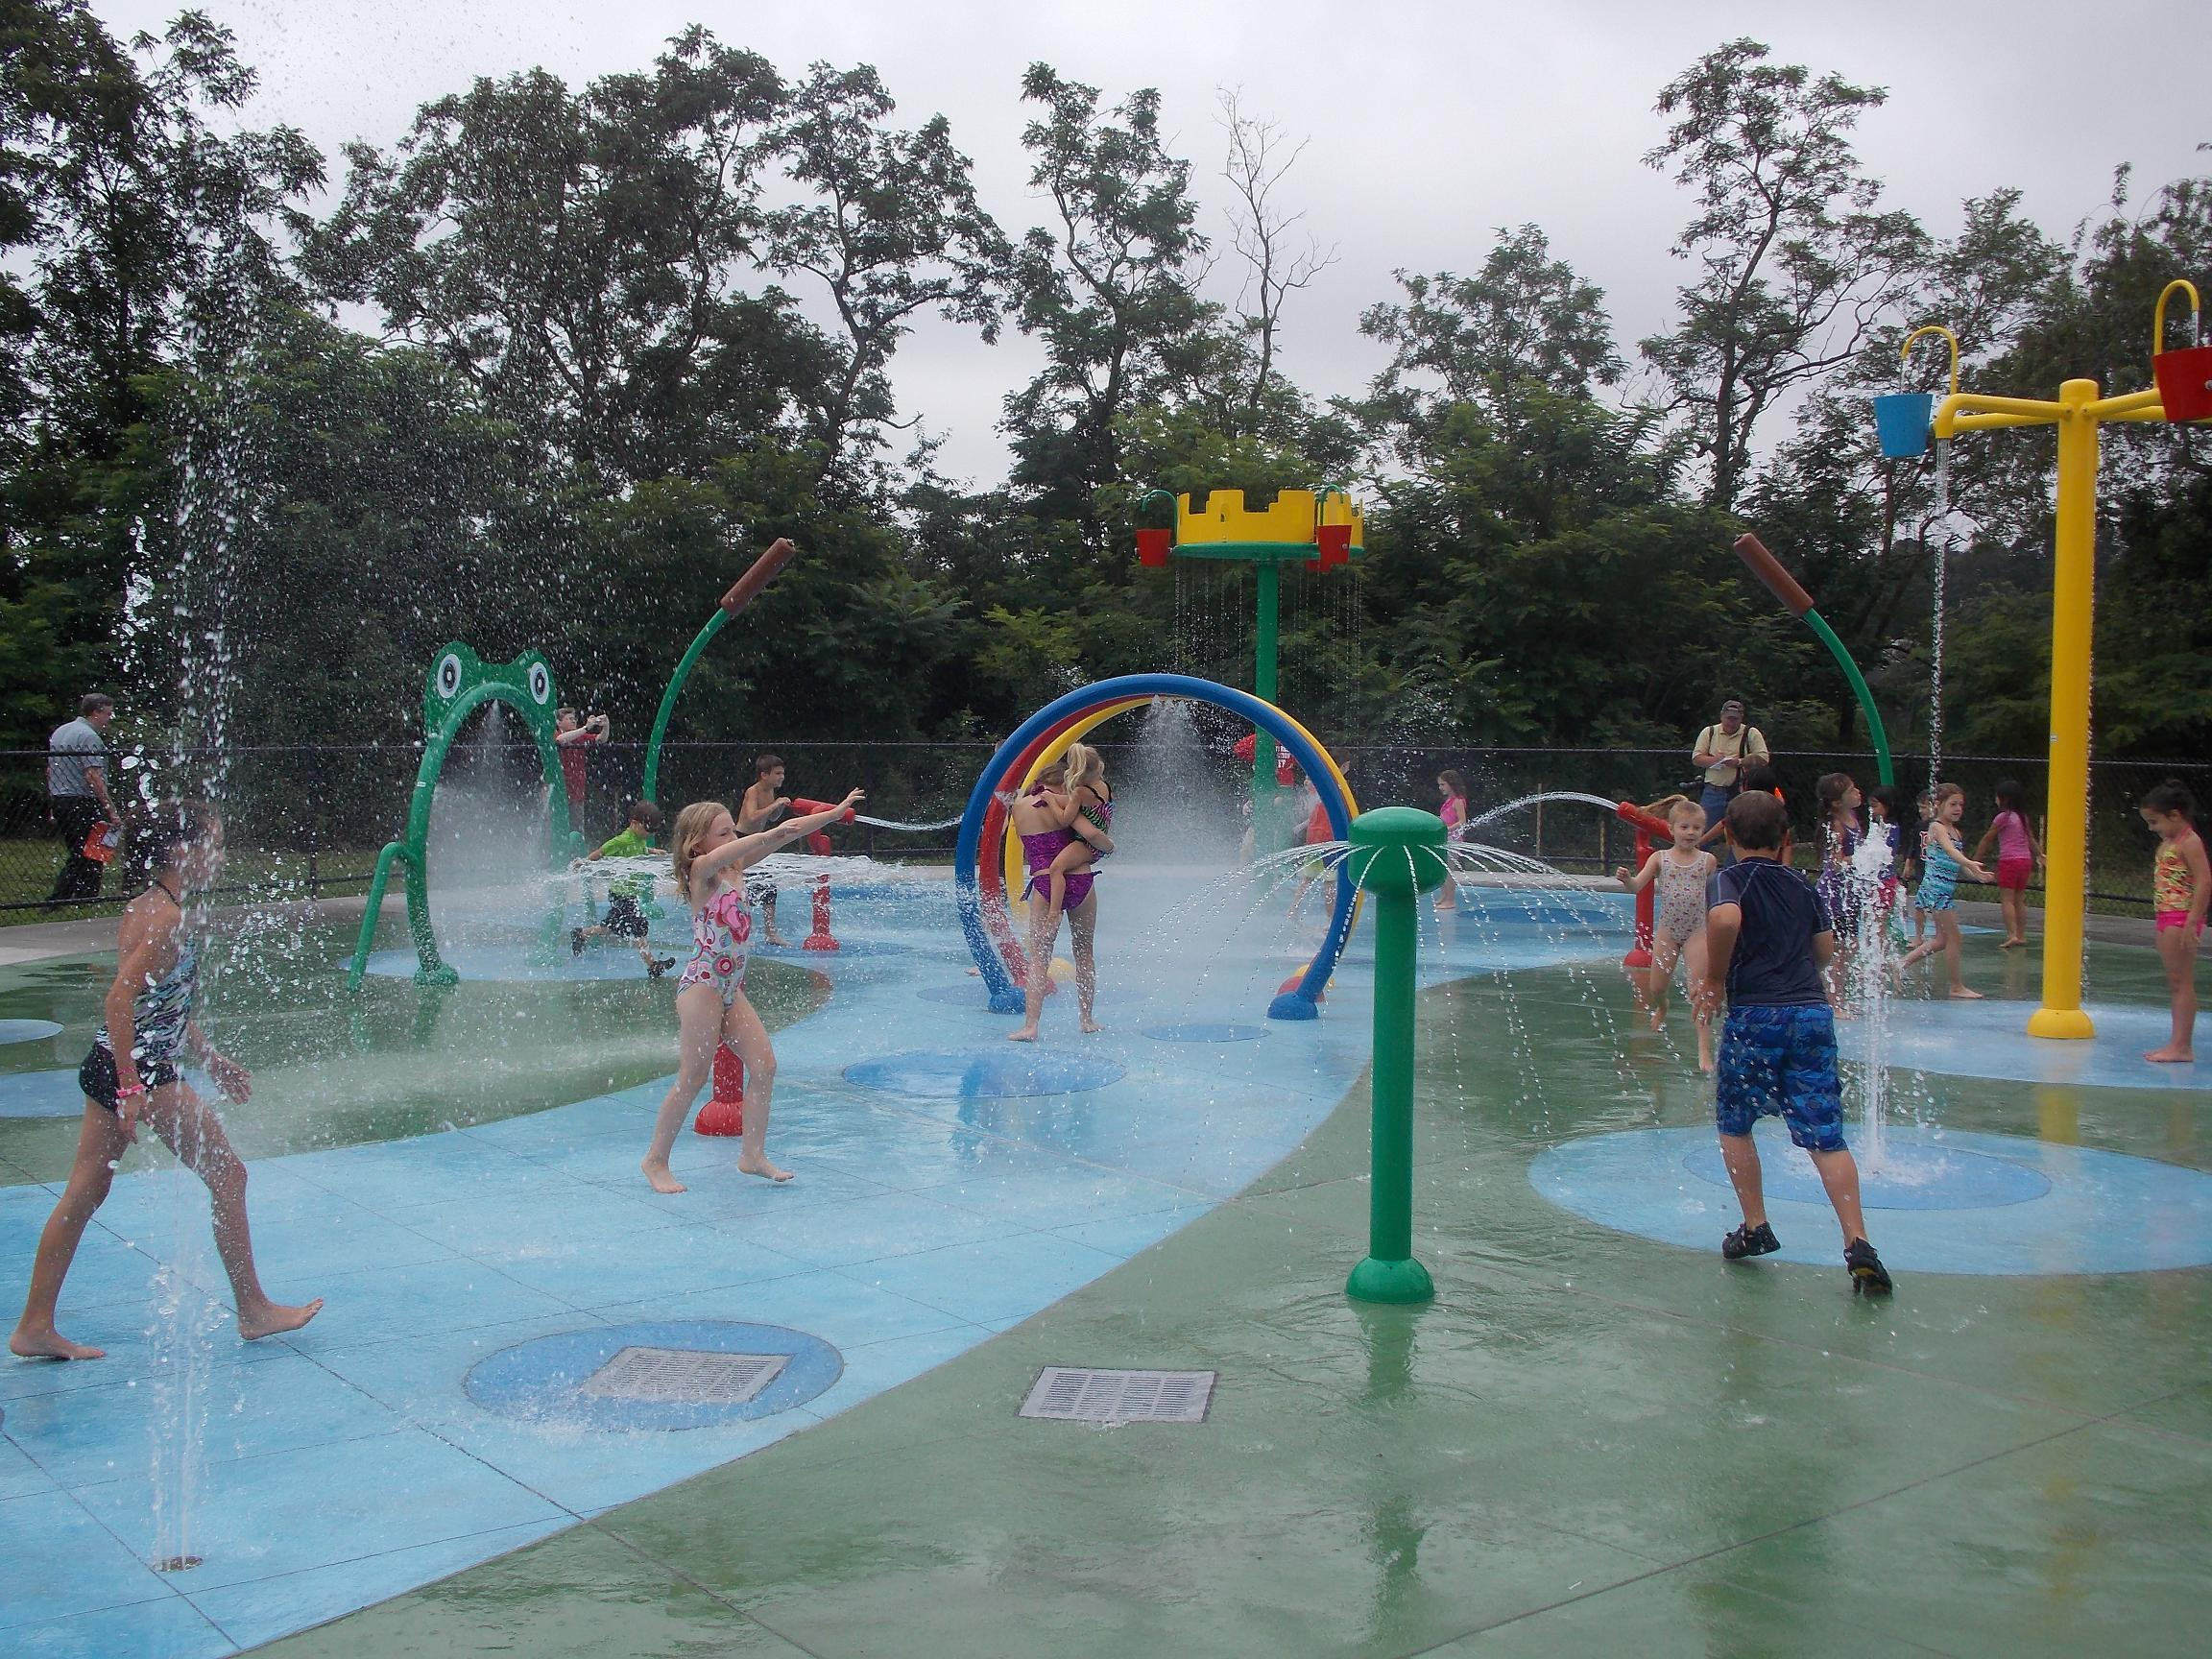 children's water play equipment, Water play structures, spray park equipment